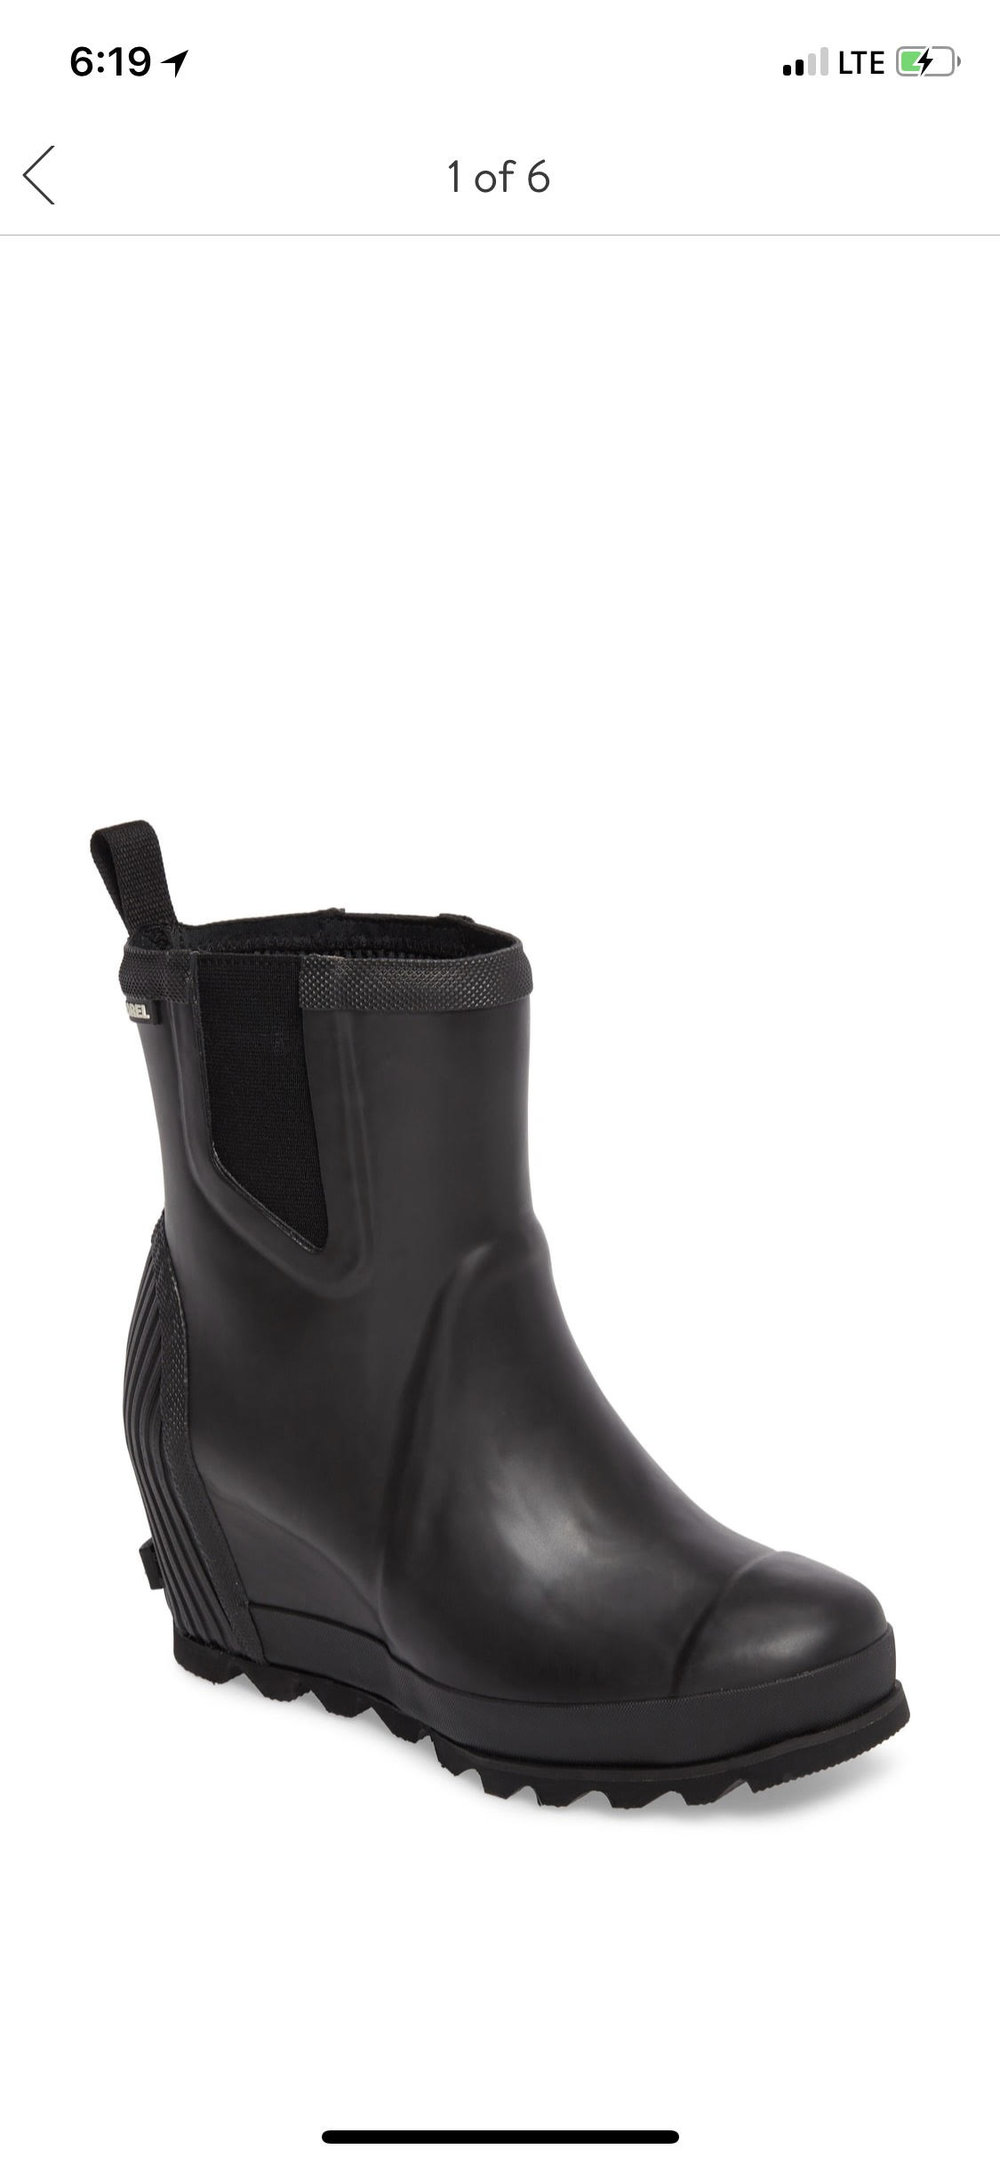 Sorel Wedge Boot.jpg